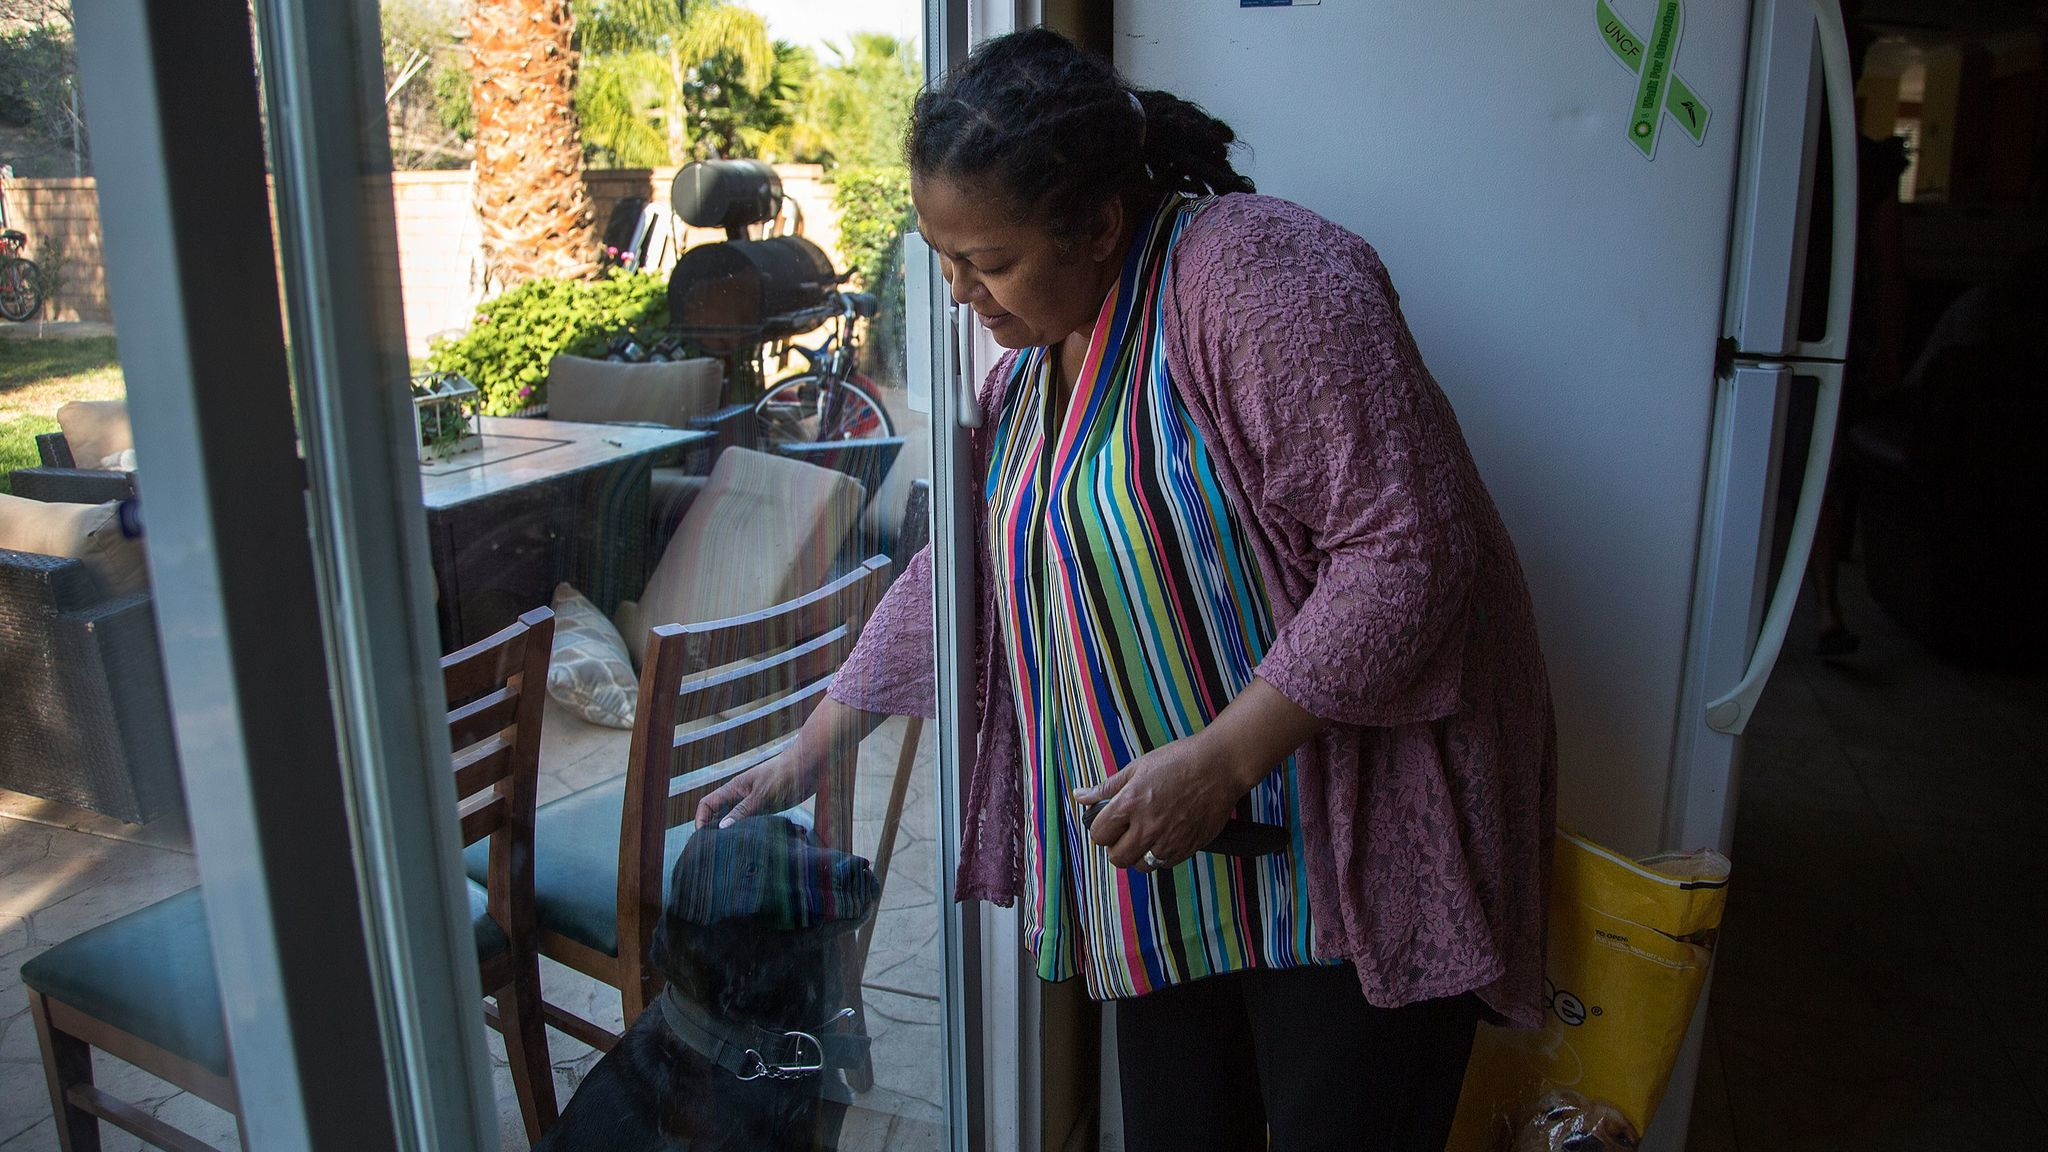 Vonya Quarles, executive director of Starting Over Inc., pets Charlie, a Labrador, at a men's transitional home she runs in Corona. Programs like hers aim to help former inmates reenter society.